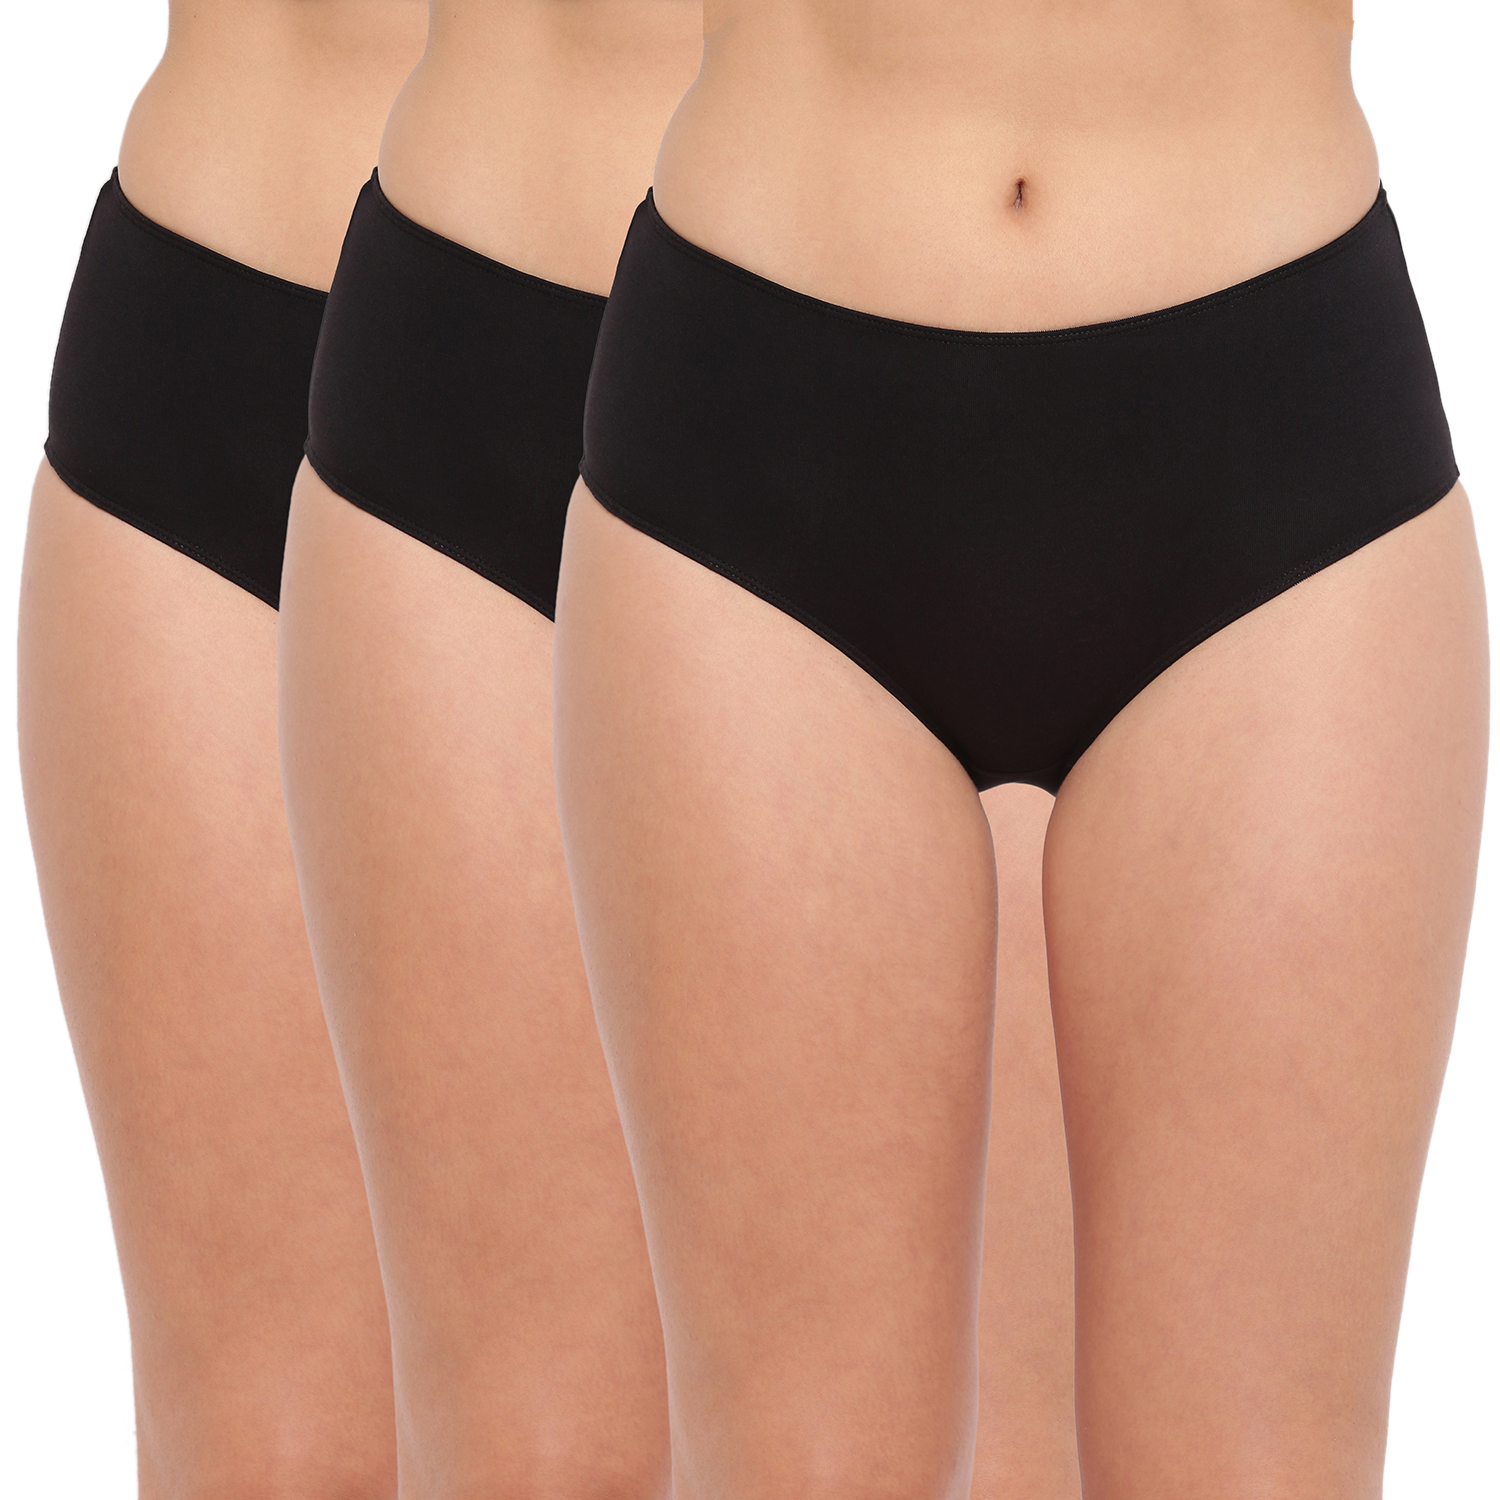 BASIICS by La Intimo | Tease 2 Please Hipster/ Full Brief Black(Pack of 3)